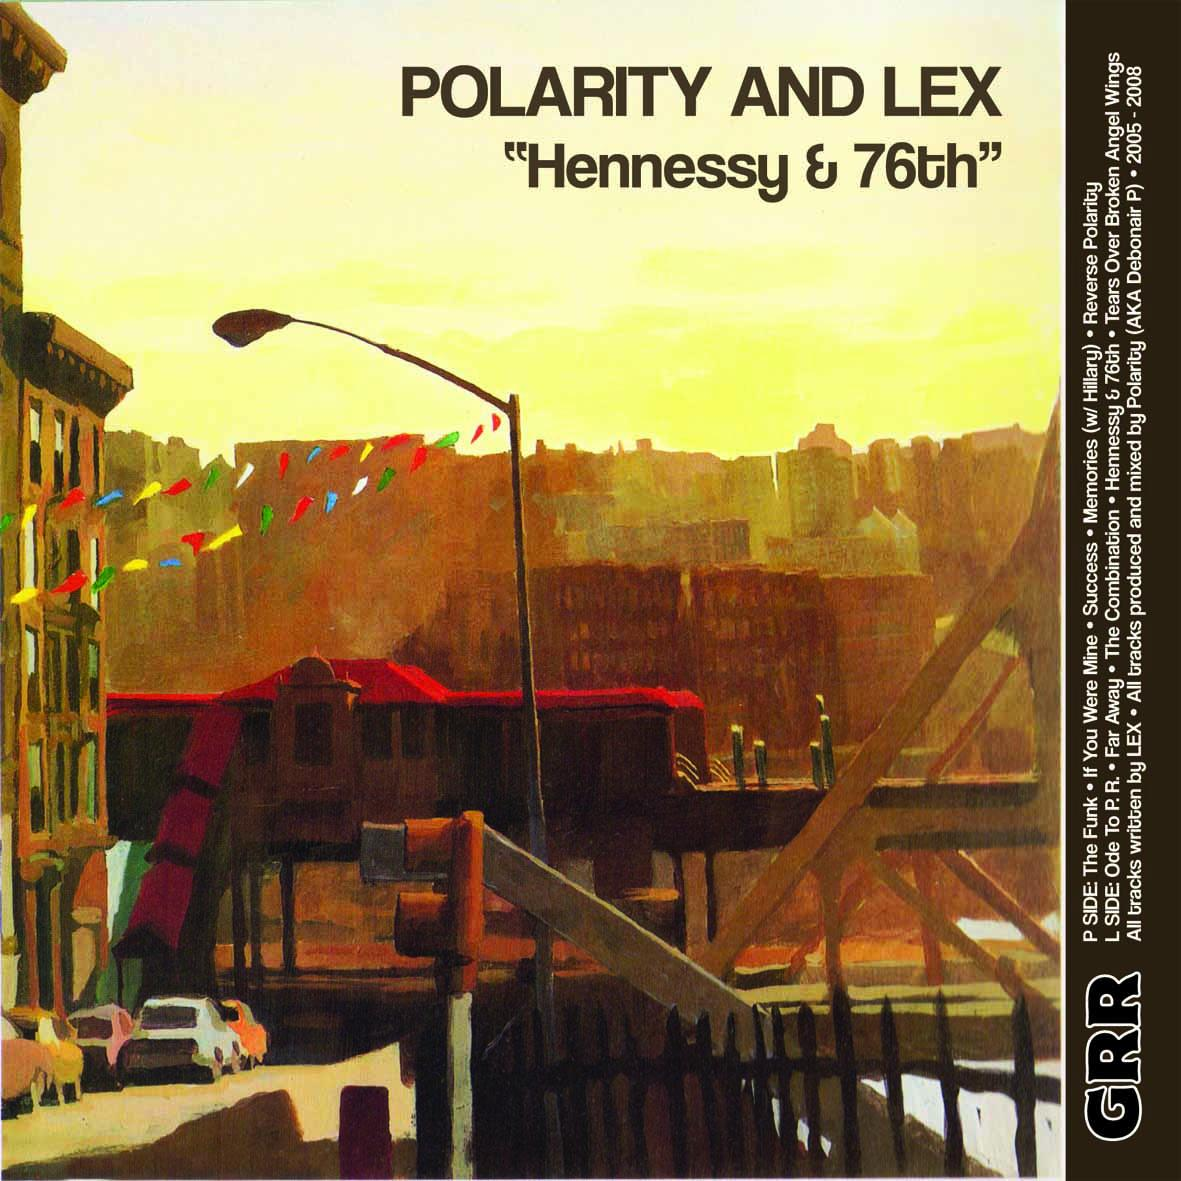 Polarity and Lex - Hennessy and 76th (2013) [MULTI]